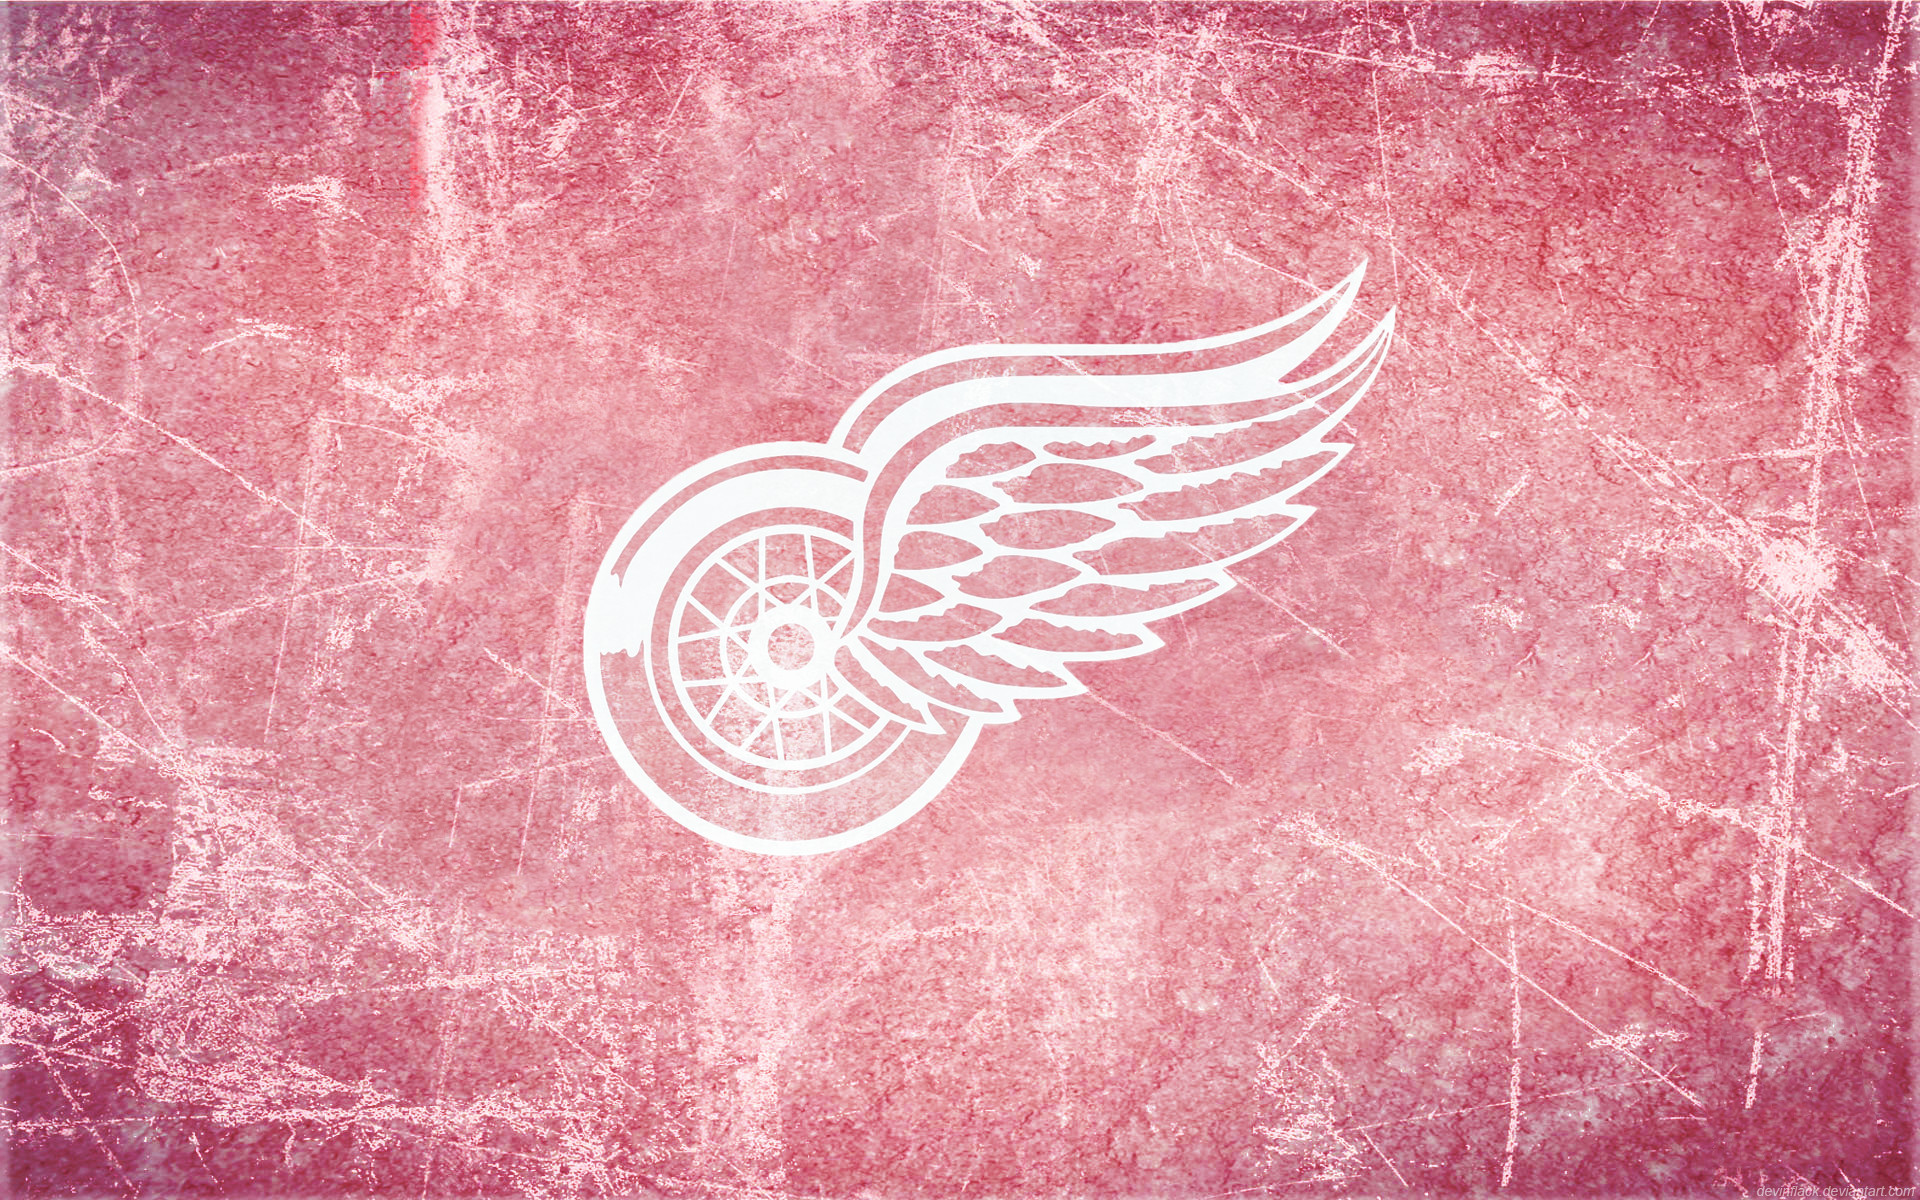 1920x1200 45 Free Detroit Red Wings Wallpaper Designs & Trivia!